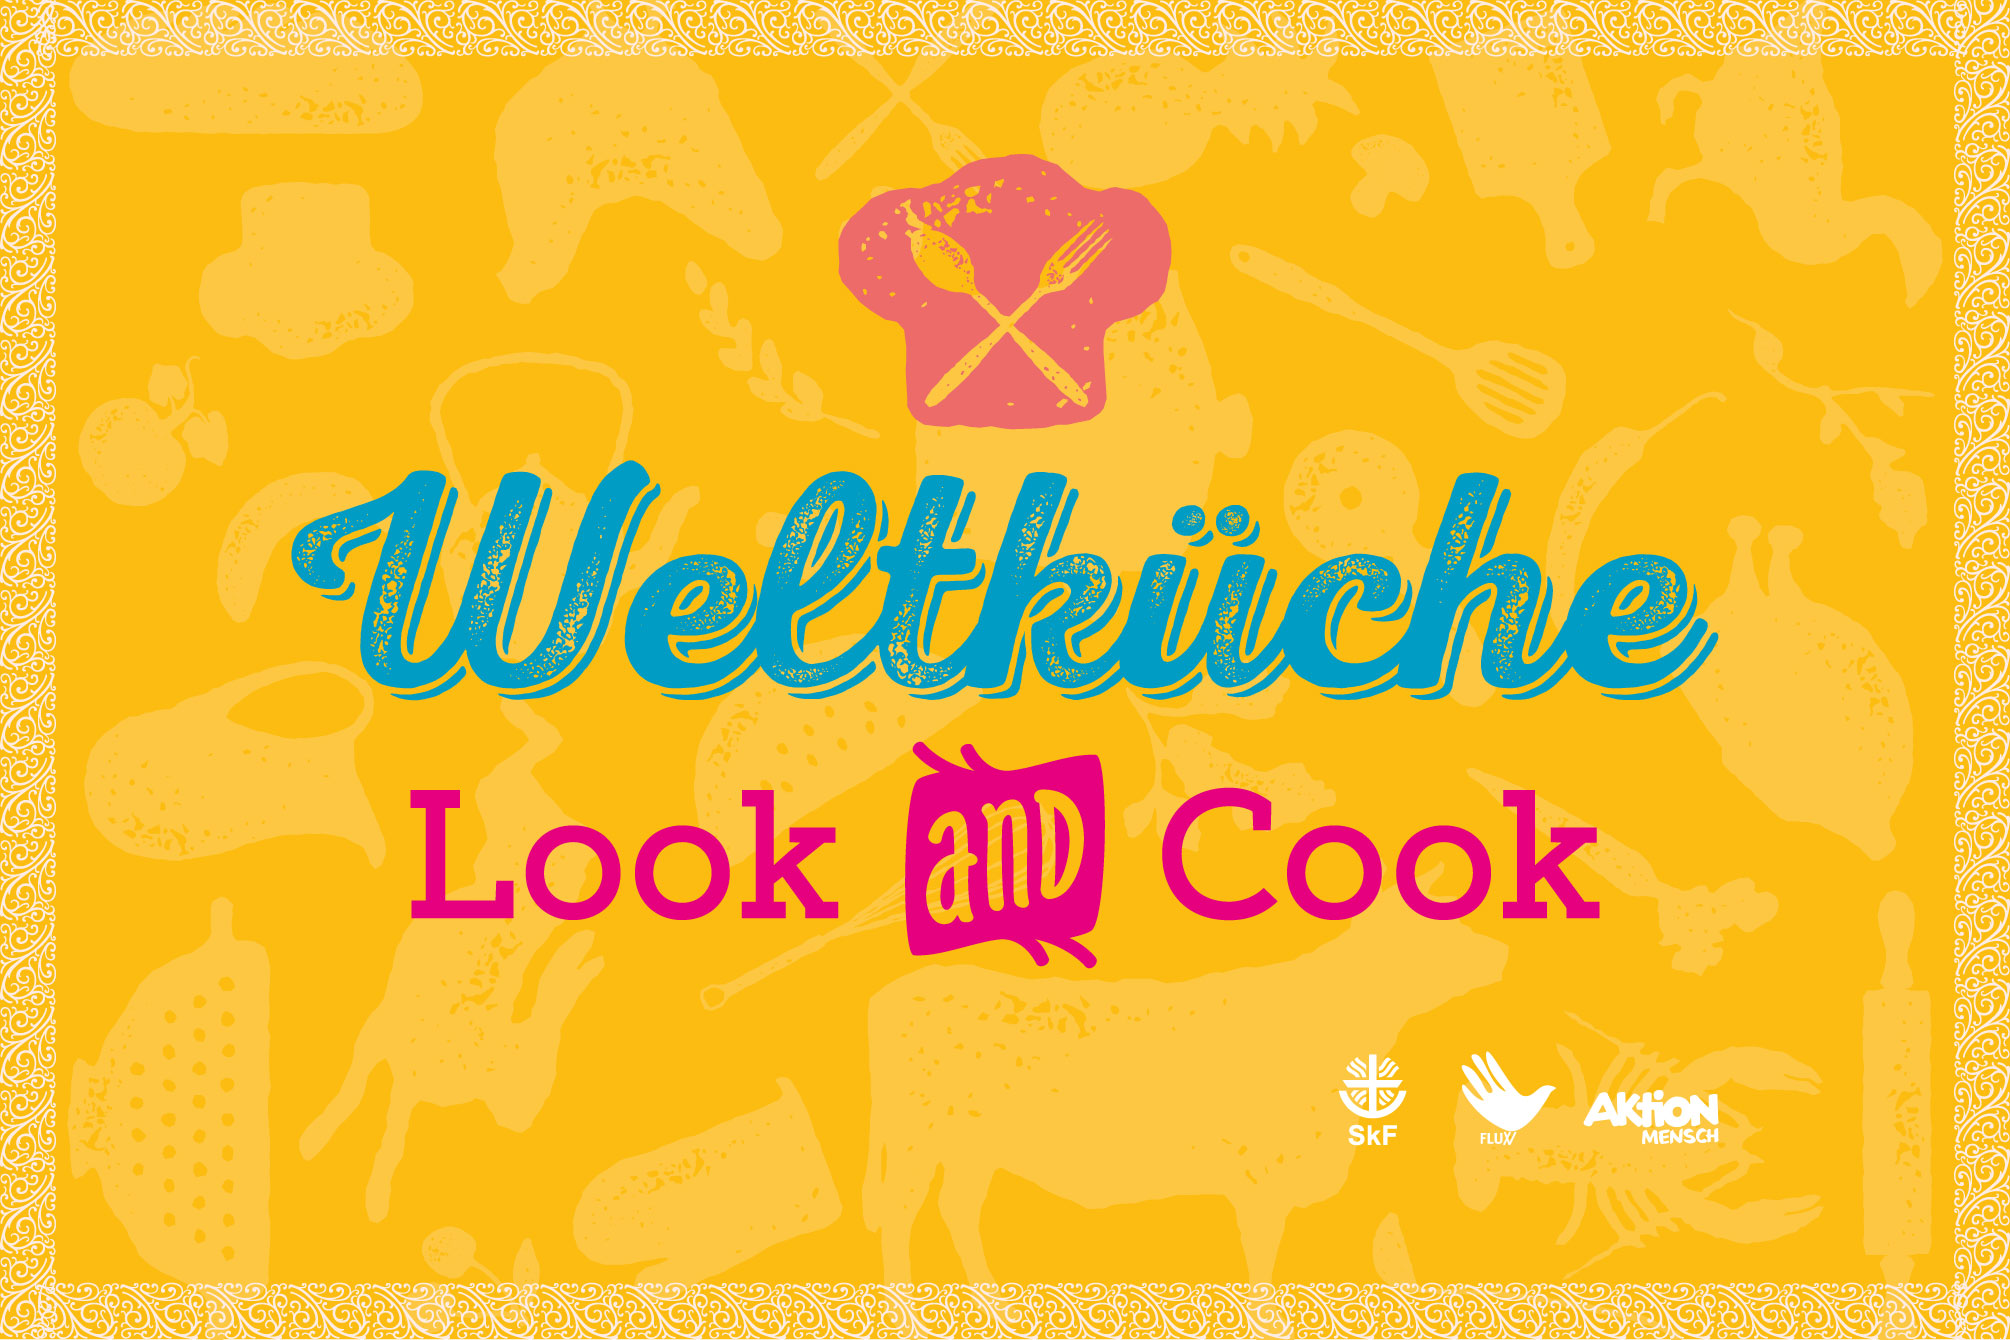 Weltkueche_Look and Cook